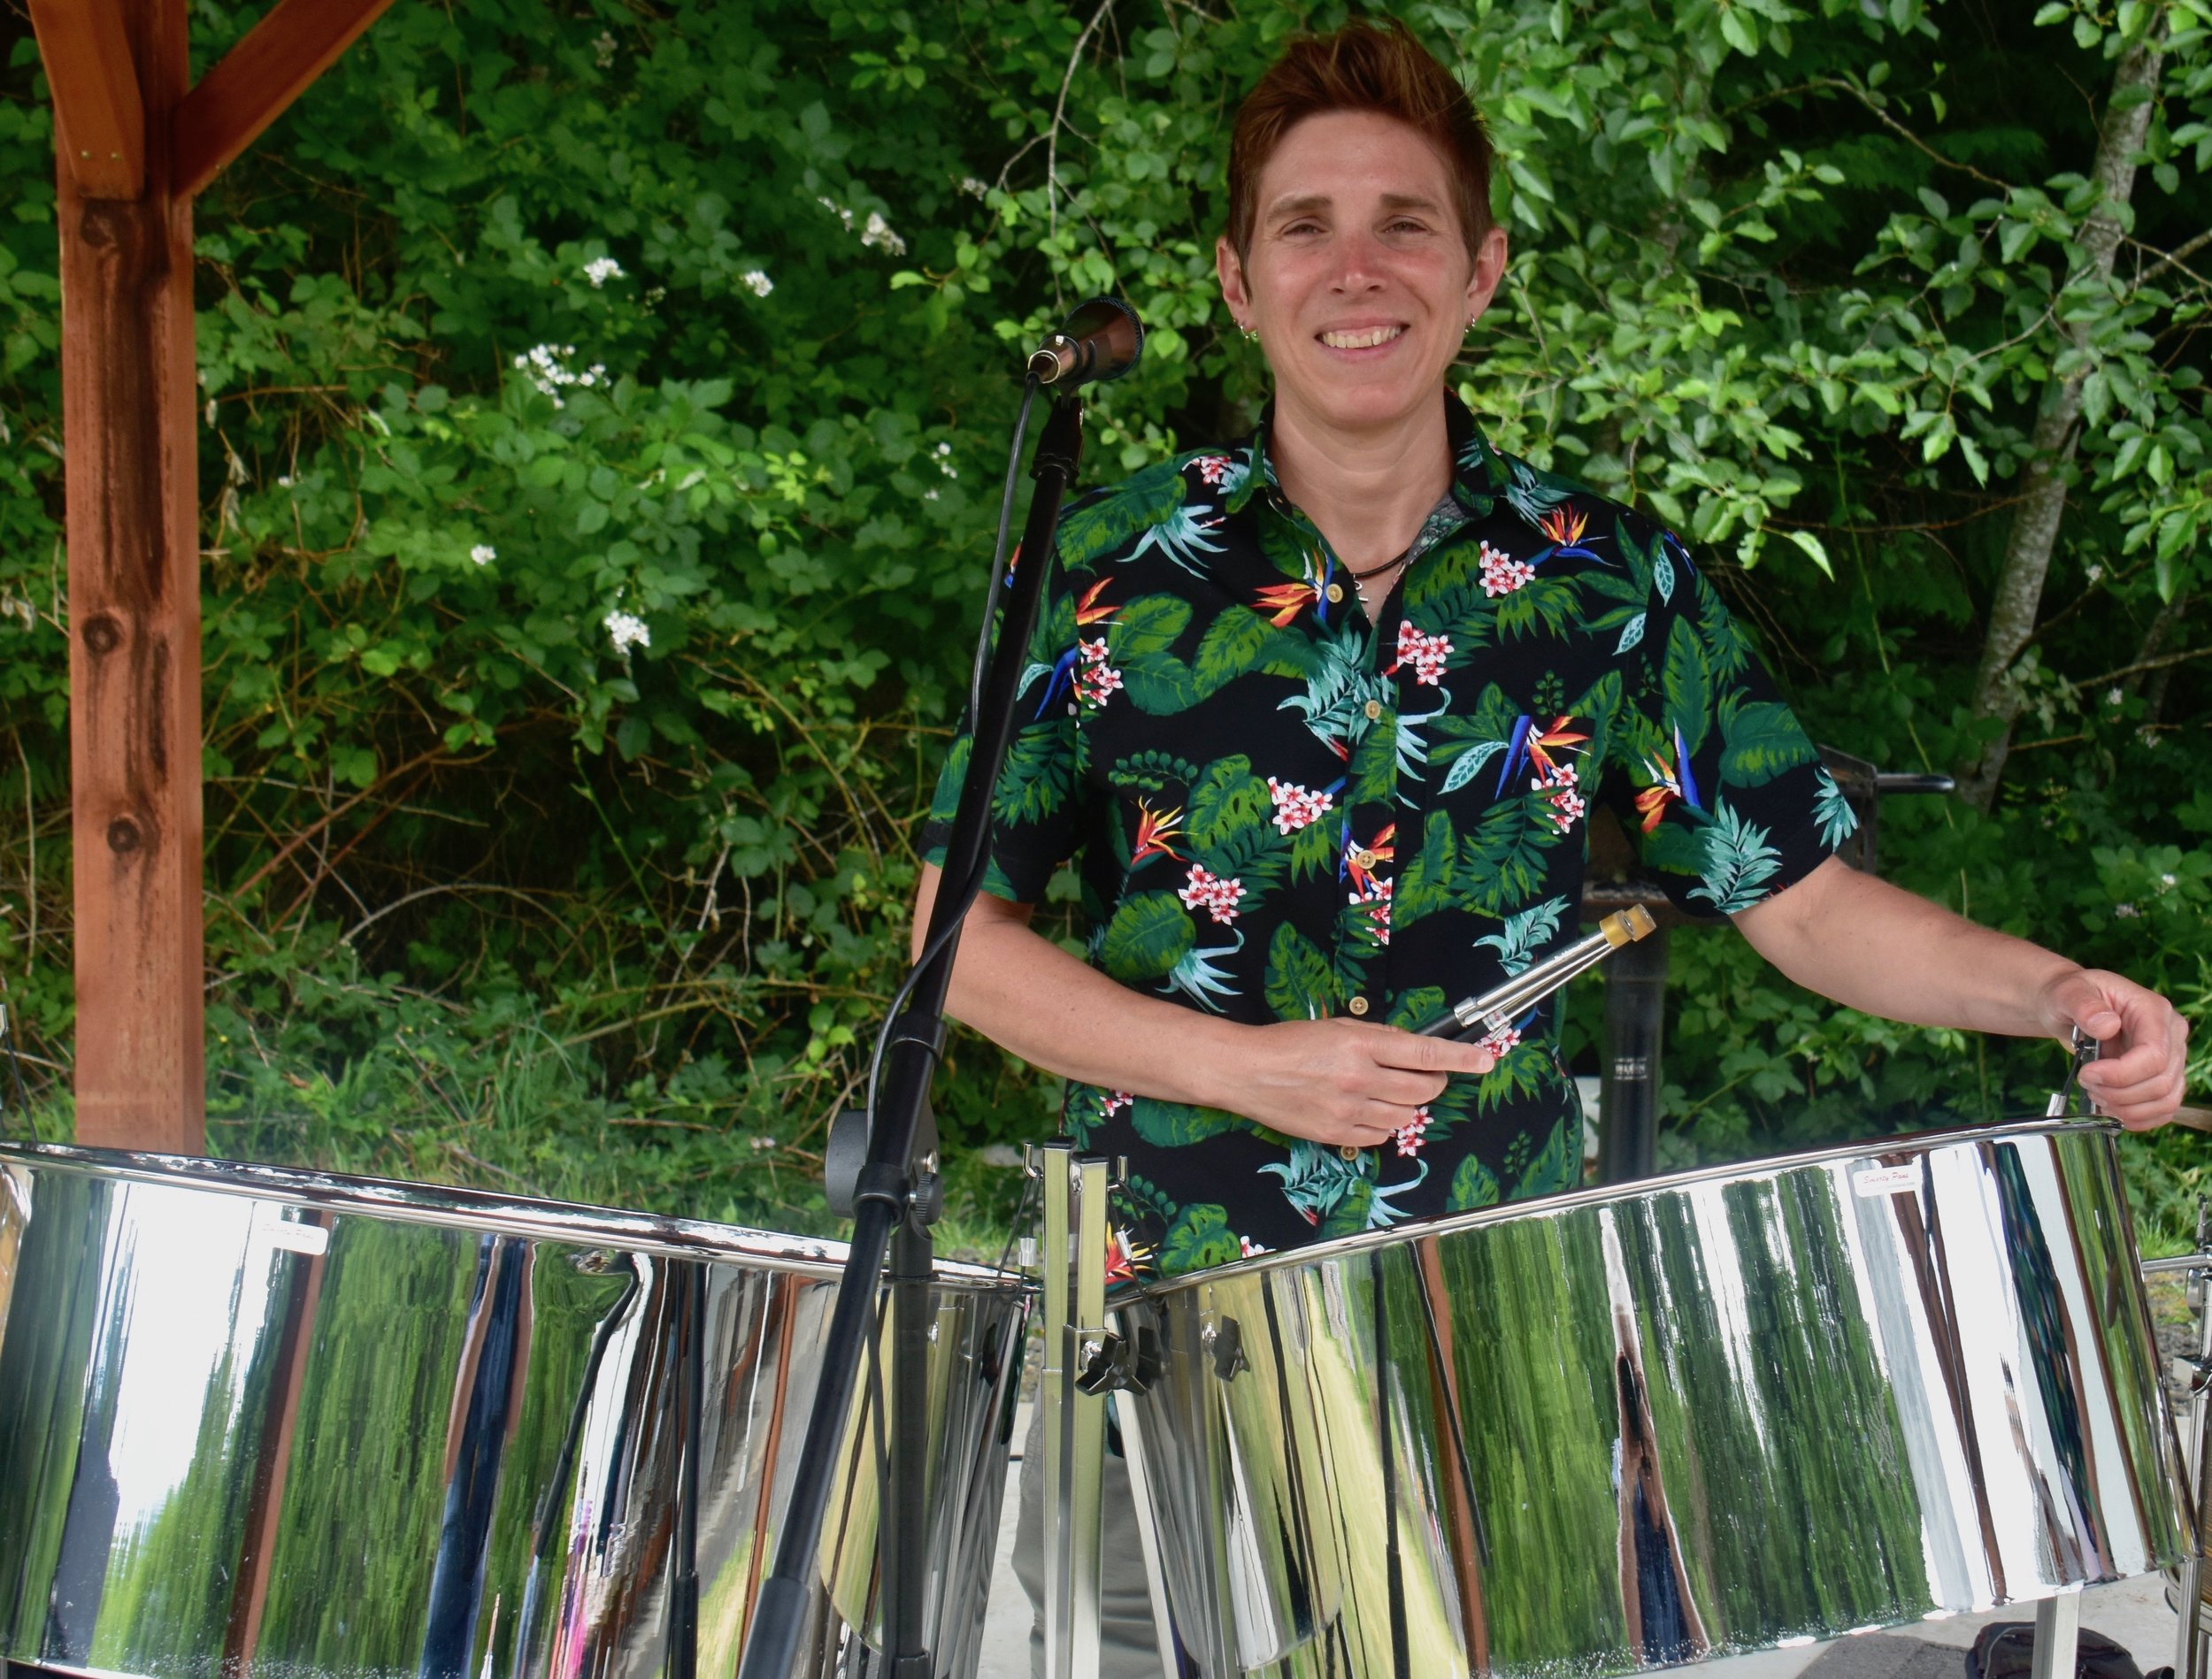 Angie Tabor - steel pans, vocals